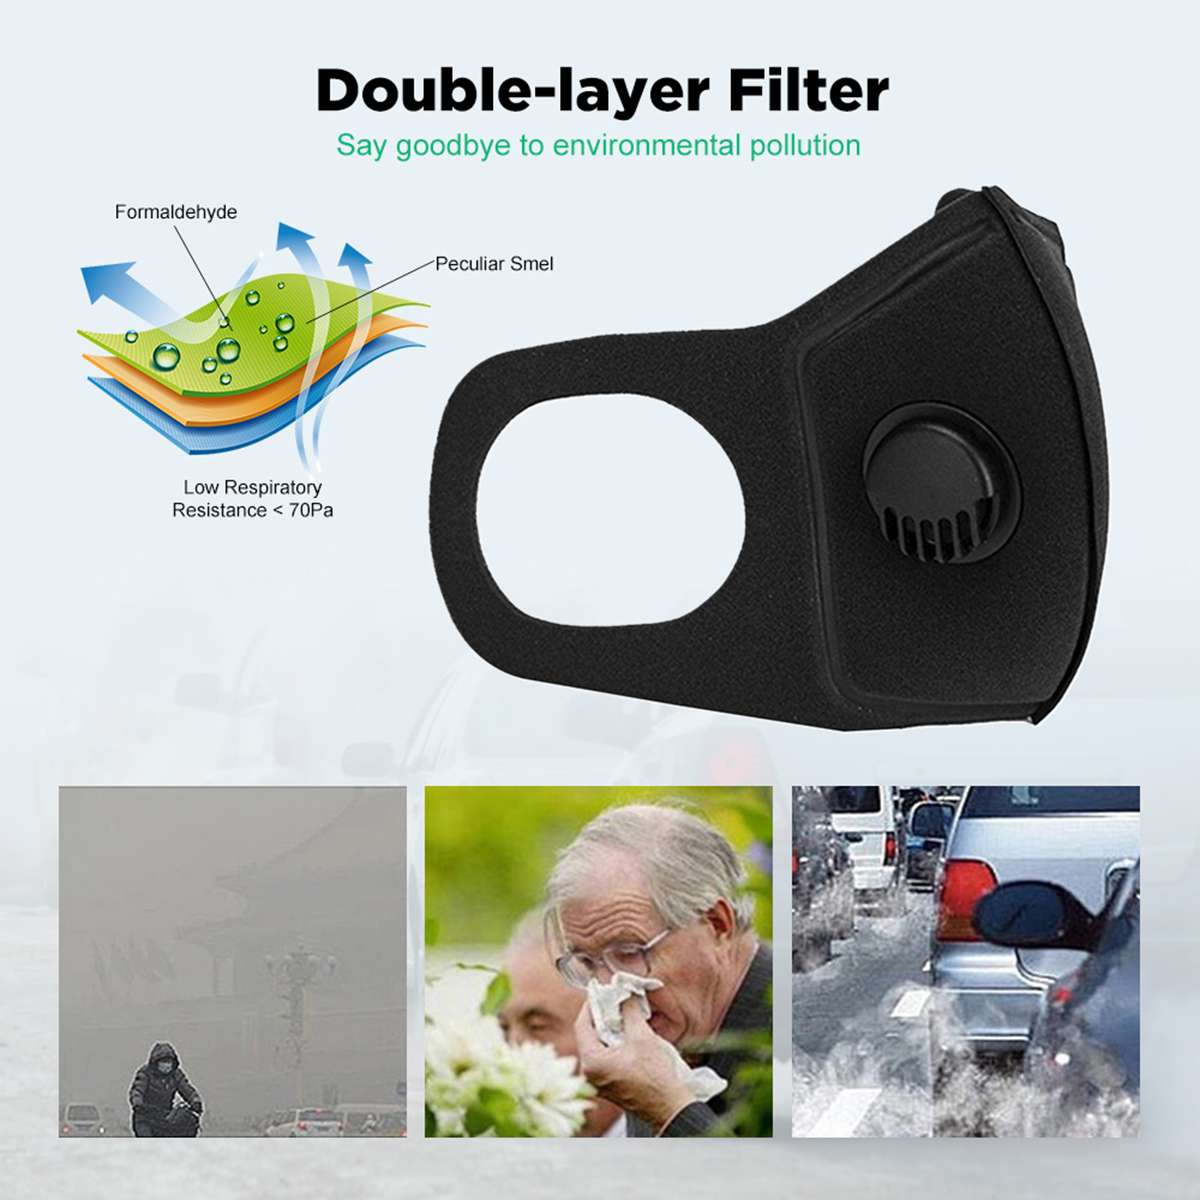 Unisex Adult Children Mouth Masks PM2.5 Dustproof Face Mask Outdoor Mask Travel Protection Anti Smog Particulate Mask Reusable 1